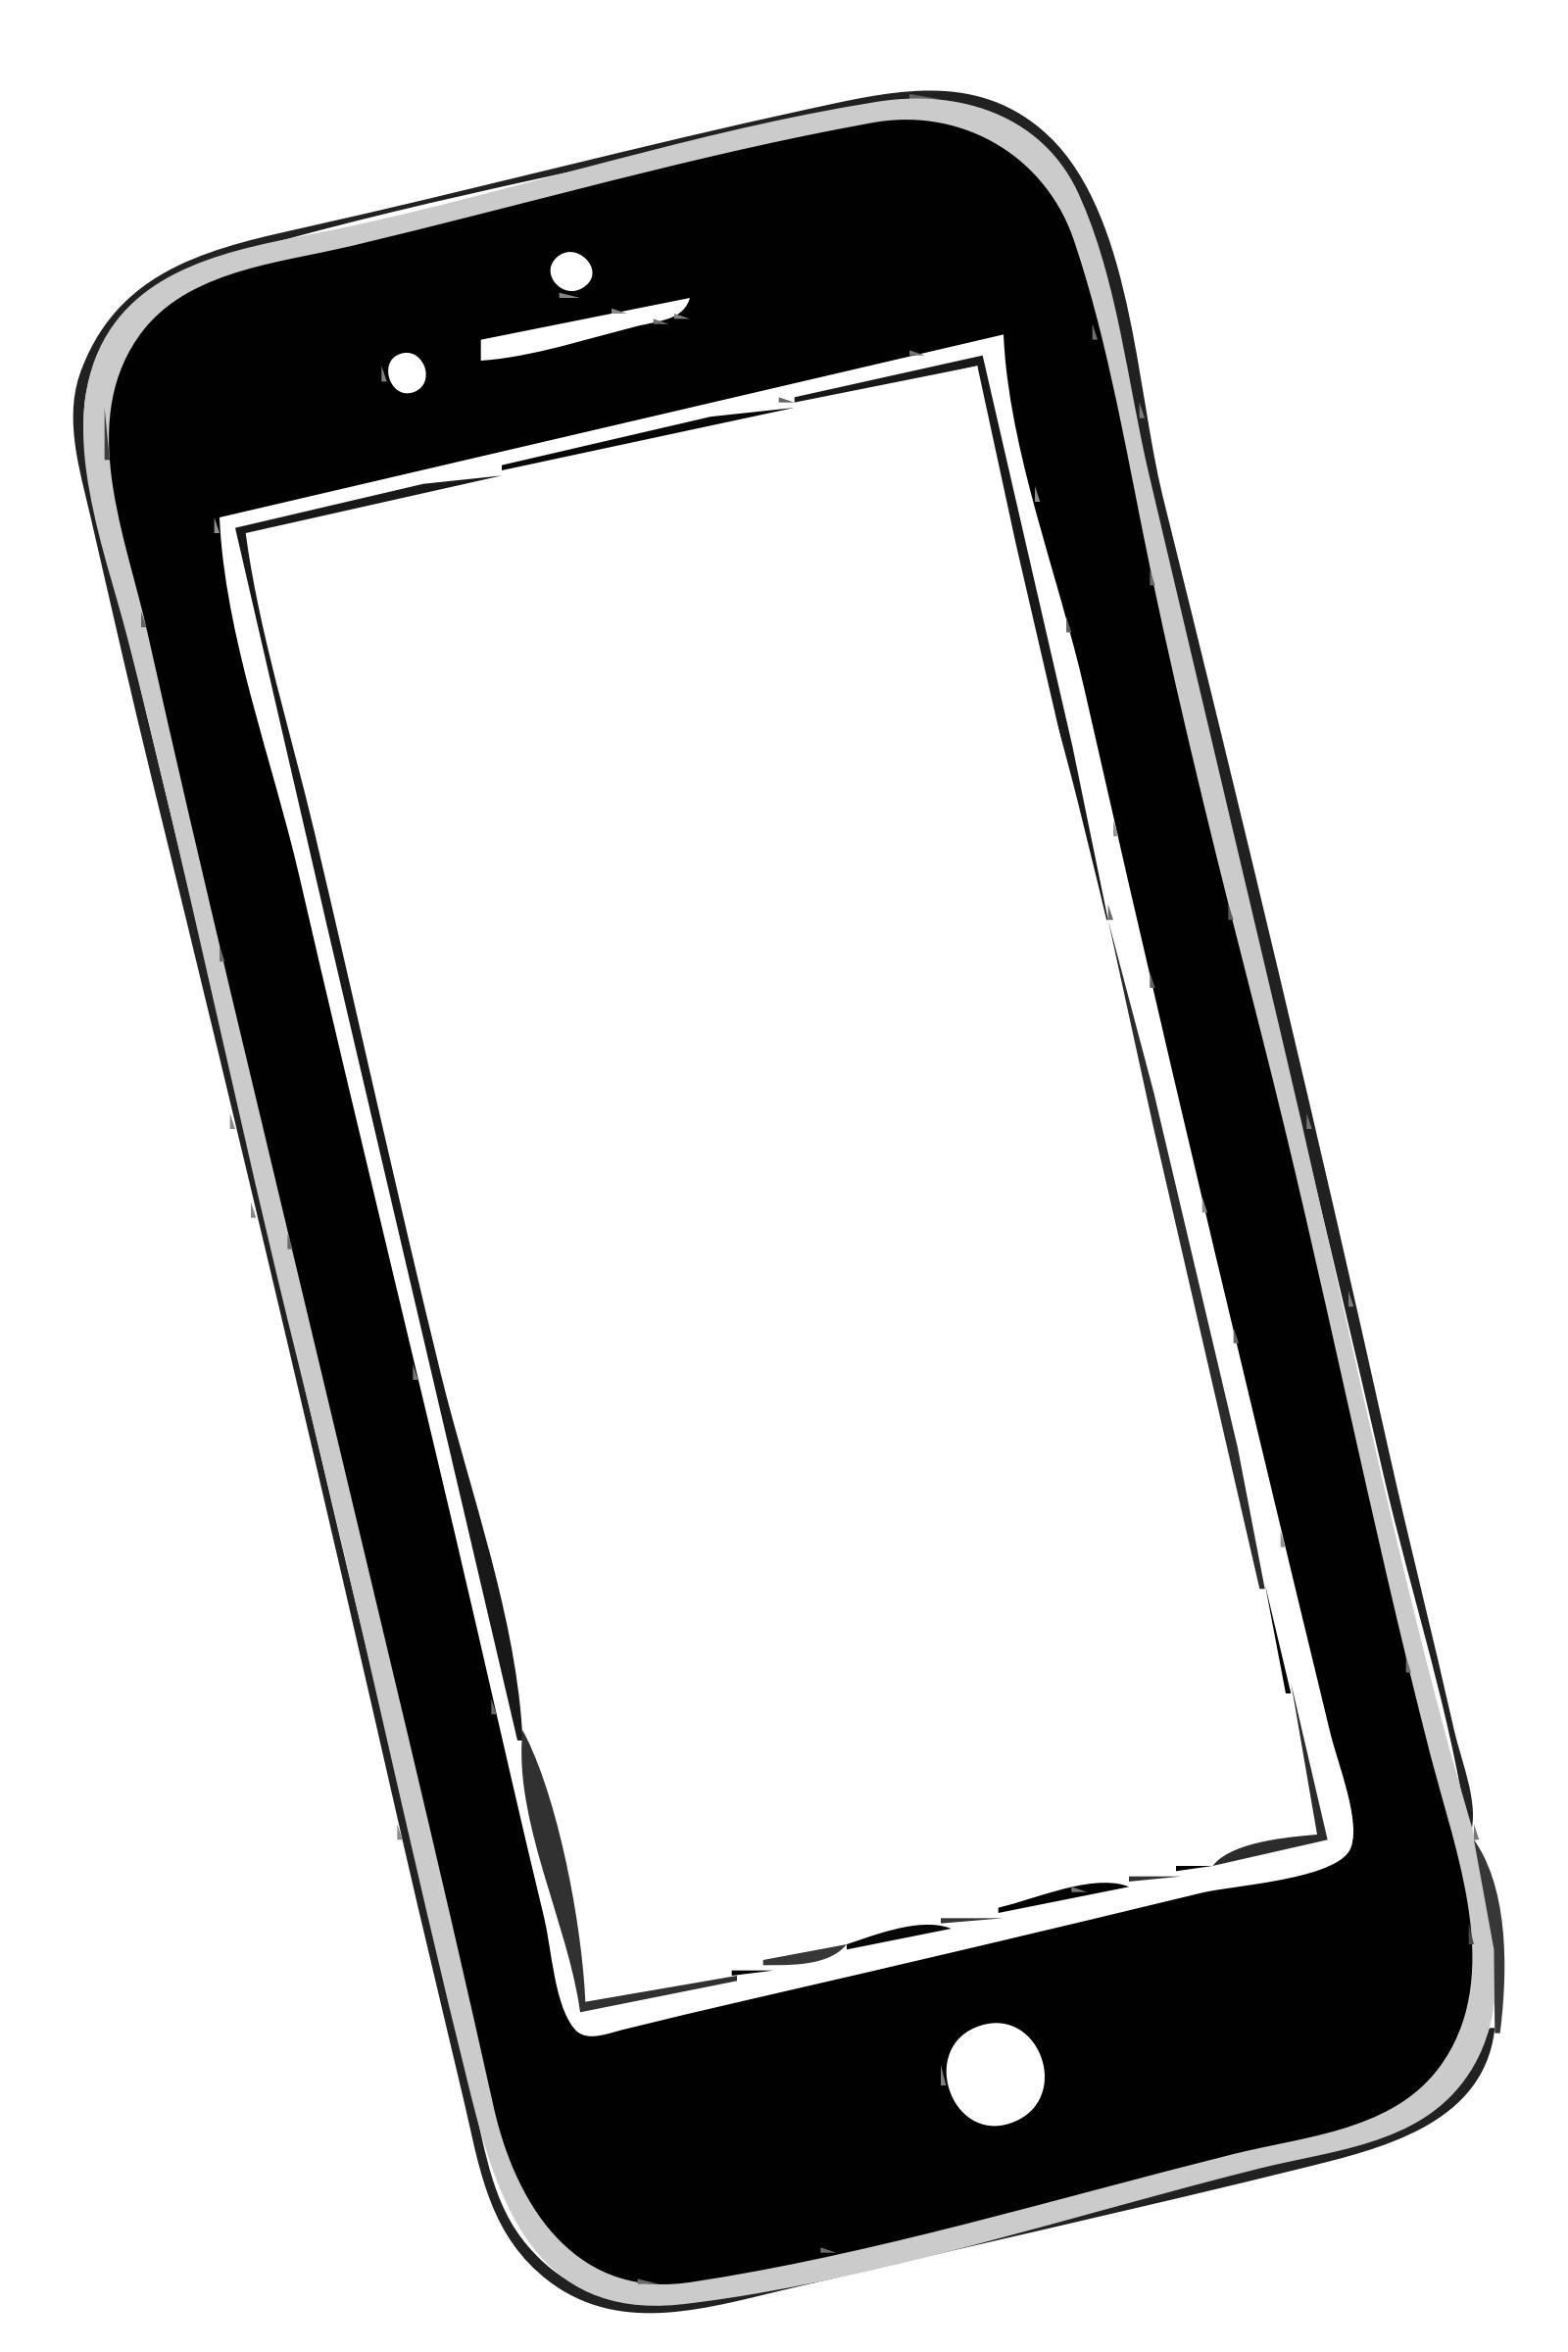 Clipart phone. Sending i to open